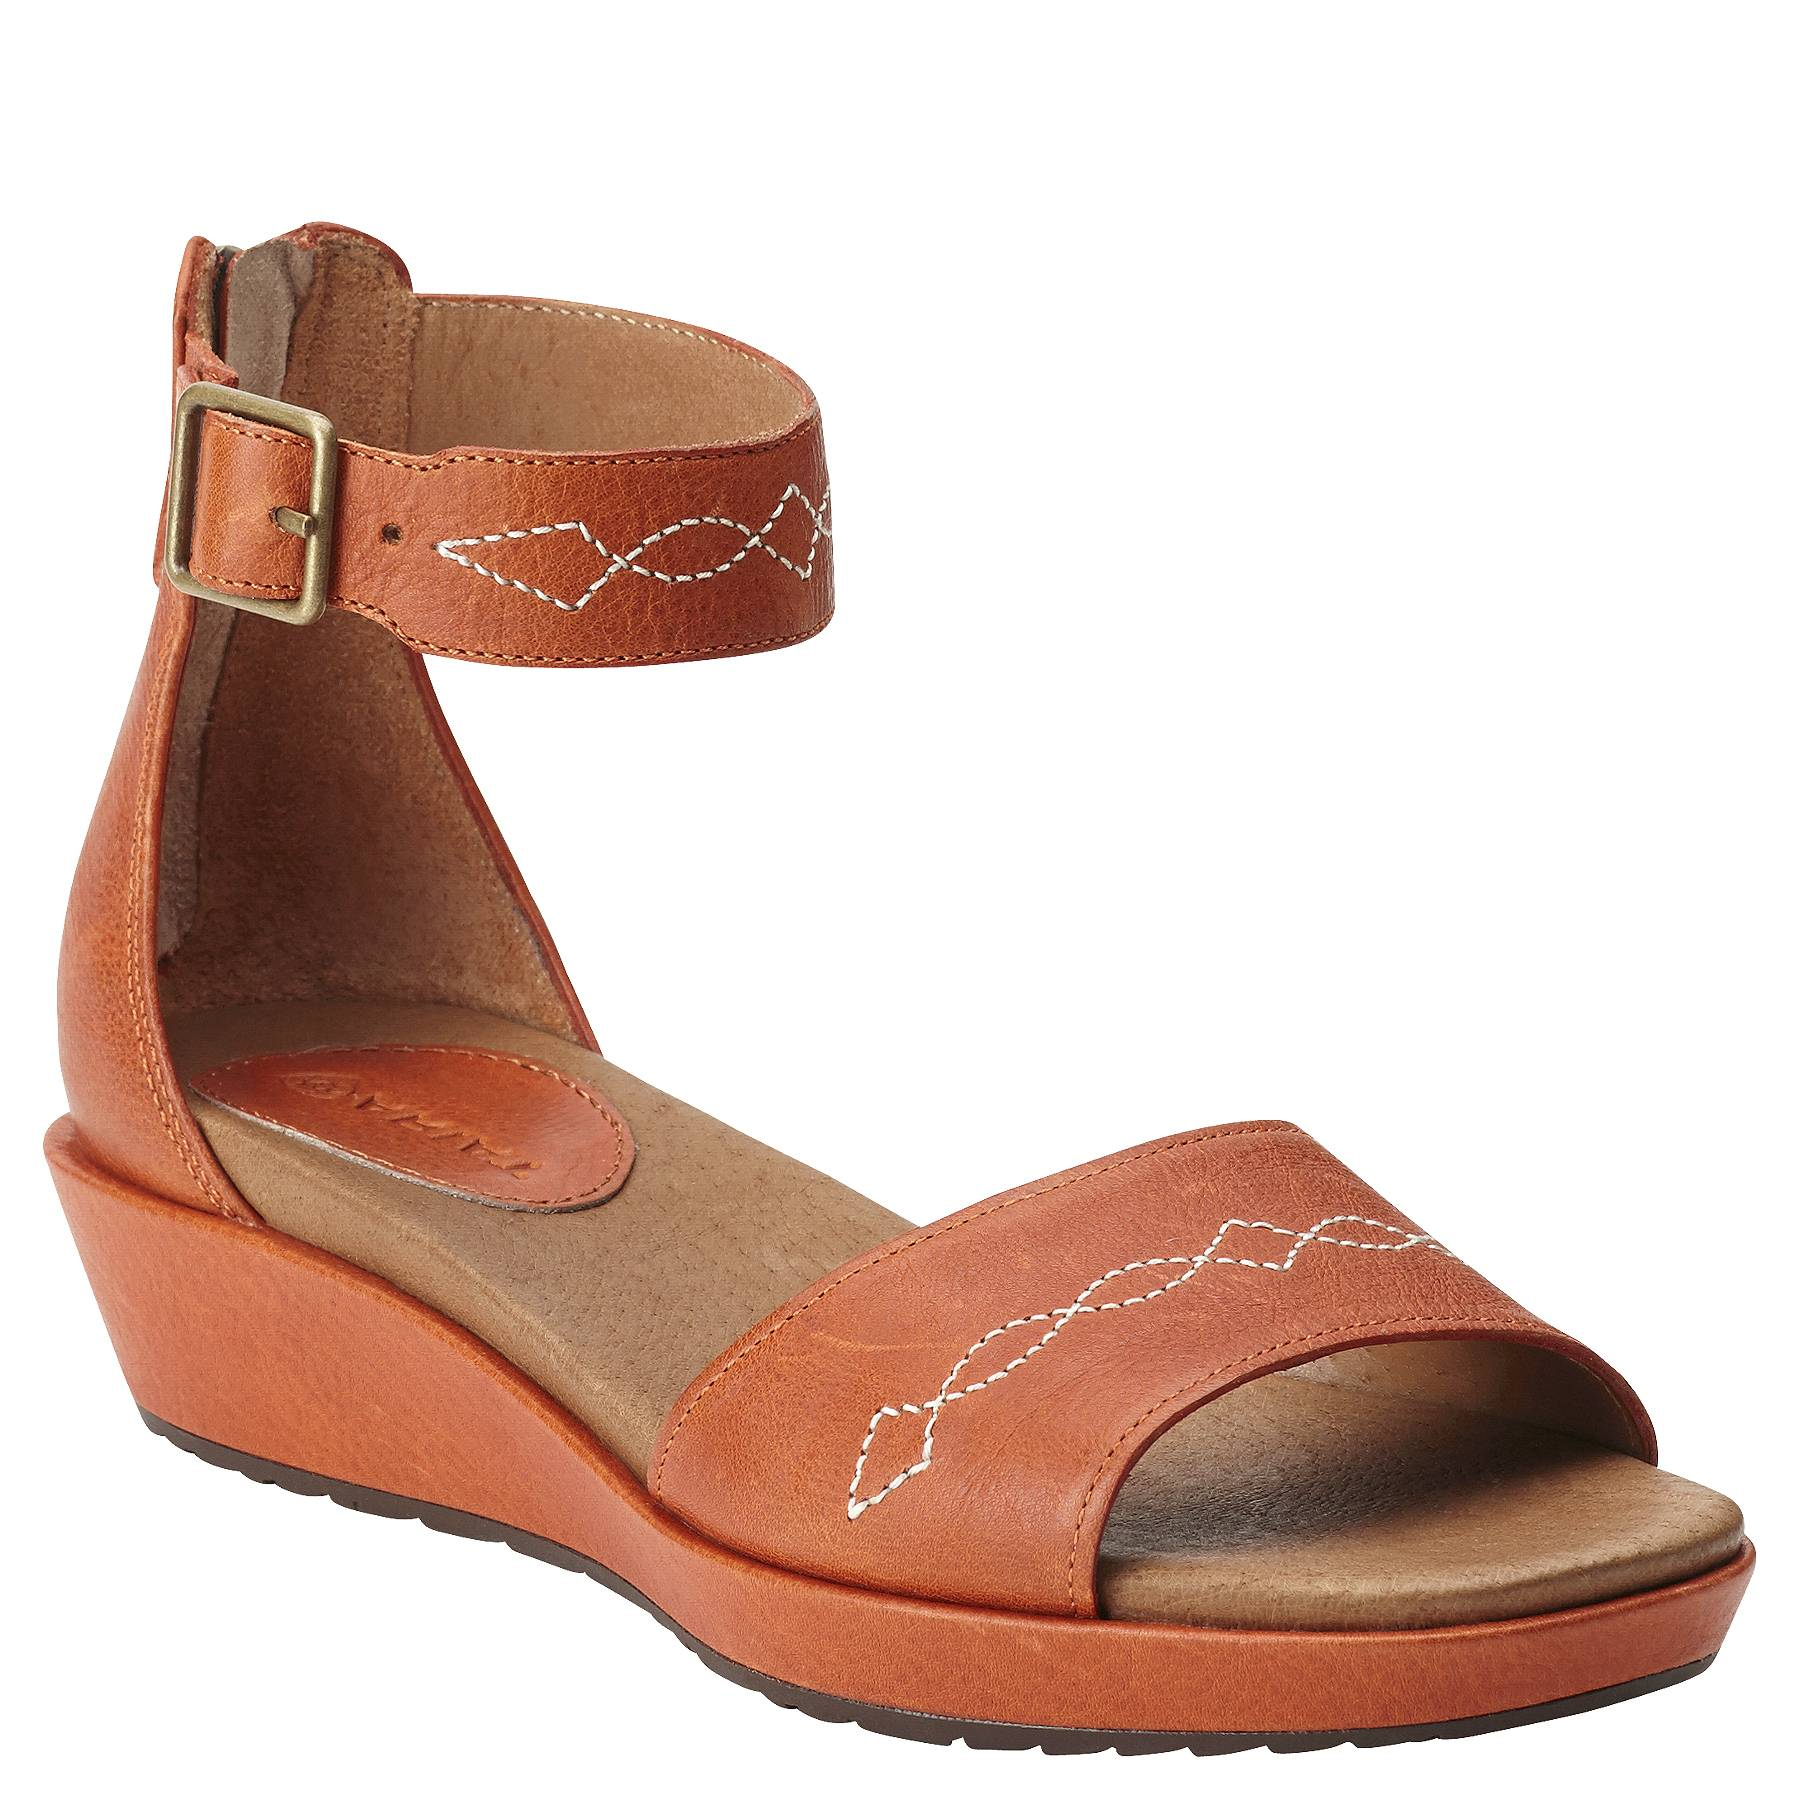 Ariat Women's Lisa Sandal